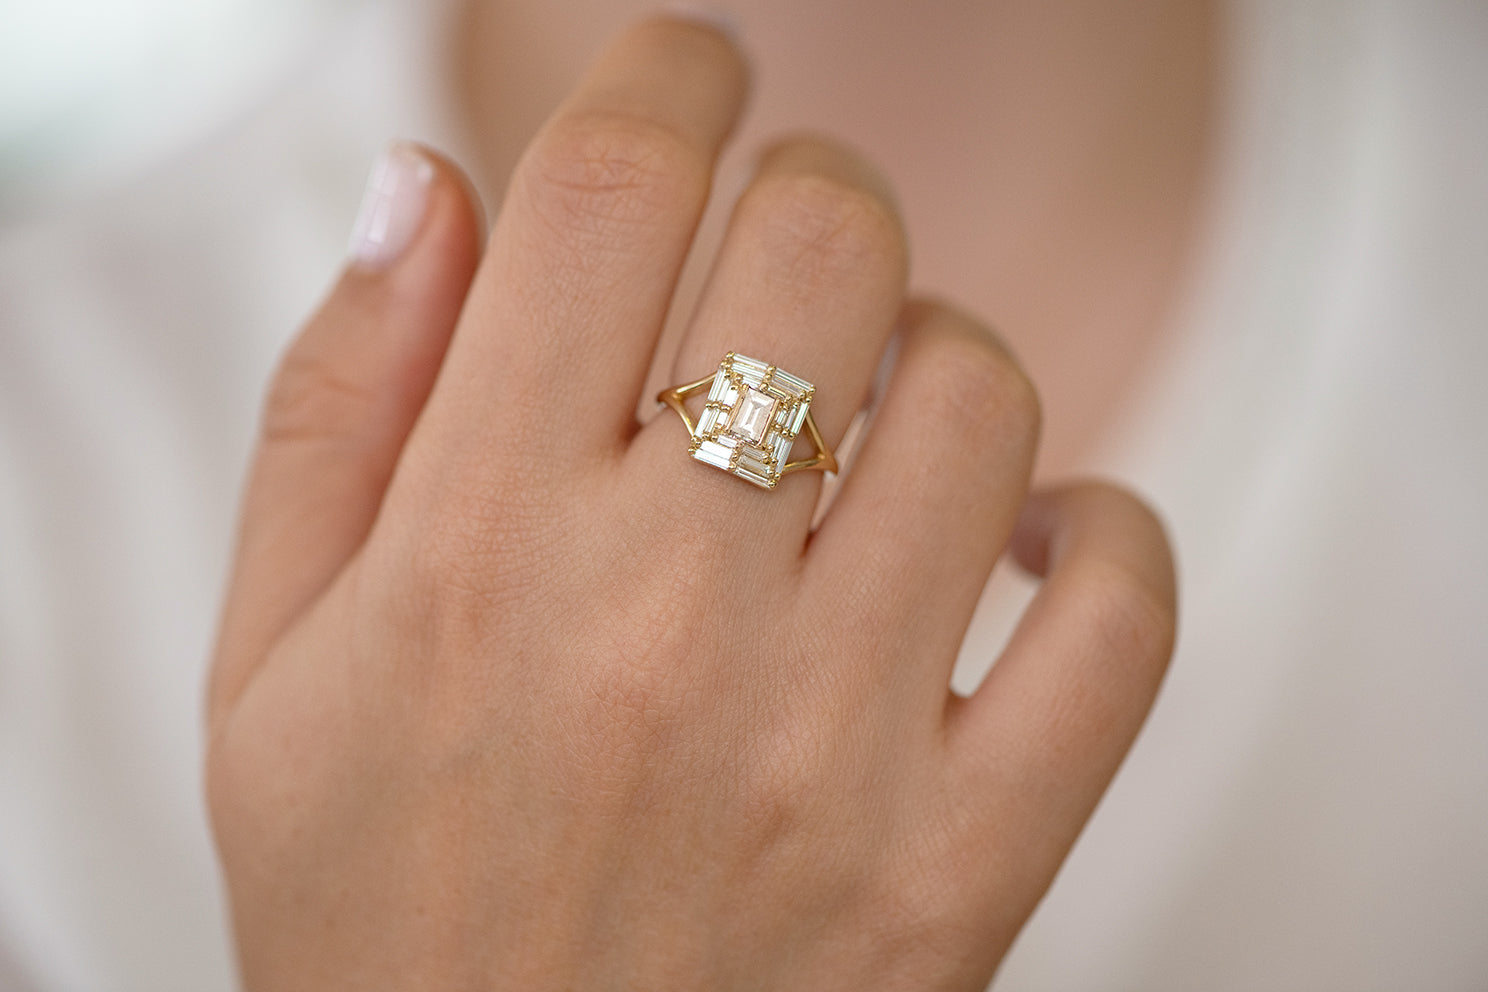 Baguette Cut Engagement Ring - Baguette Temple Ring on Hand Front View